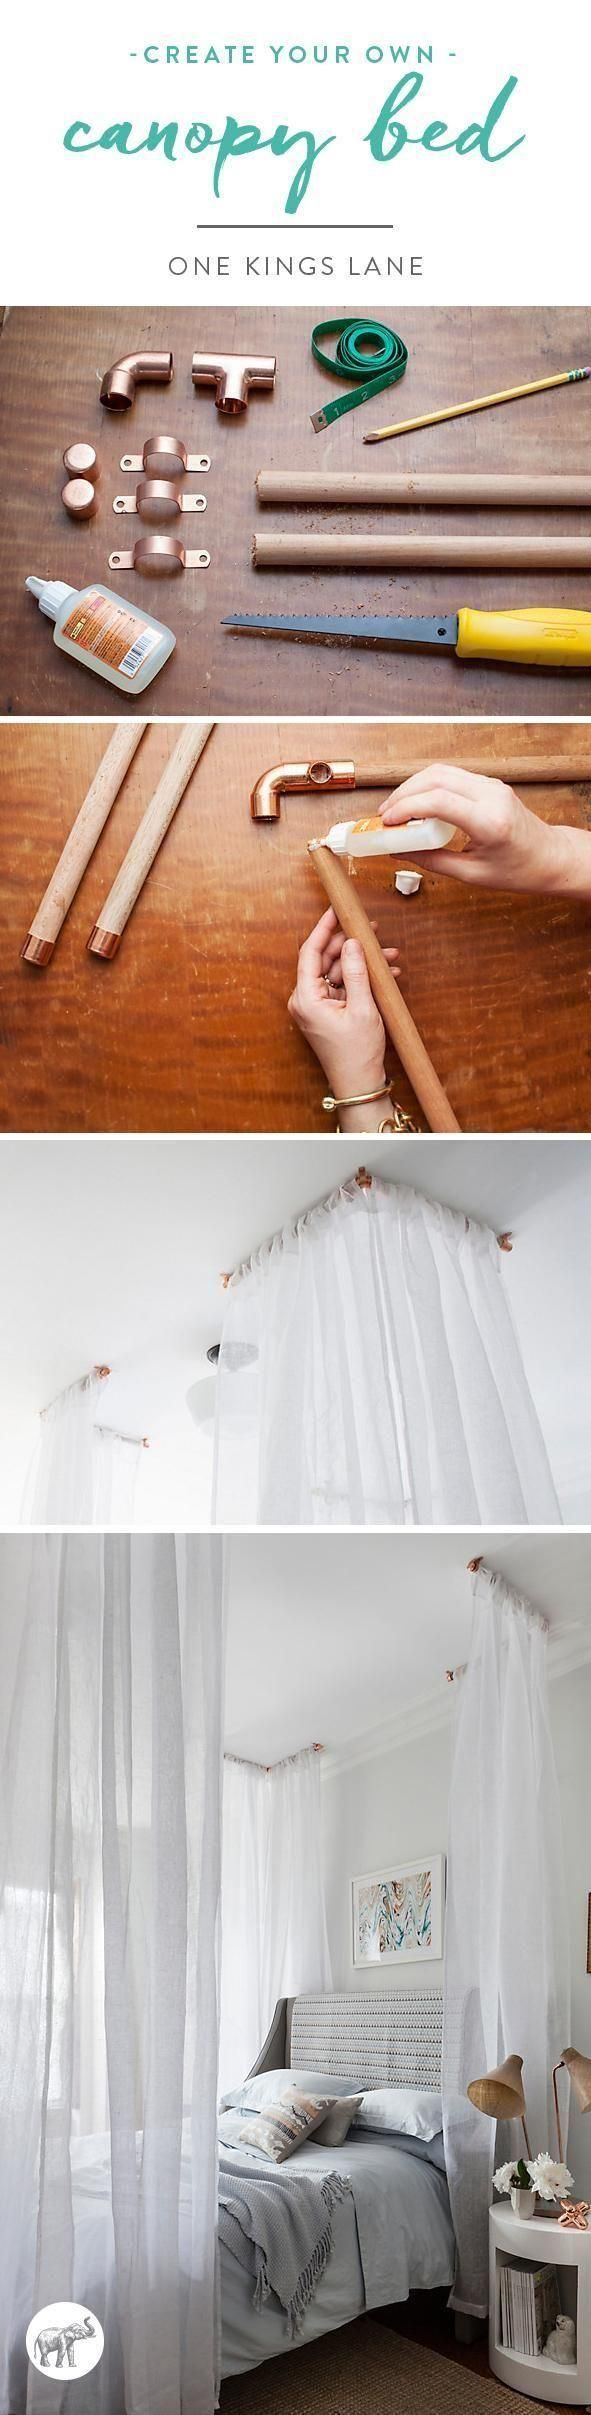 Bed canopy ideas - A Gorgeous Canopy Bed Diy Idea To Try Want A Custom Dreamy Feminine